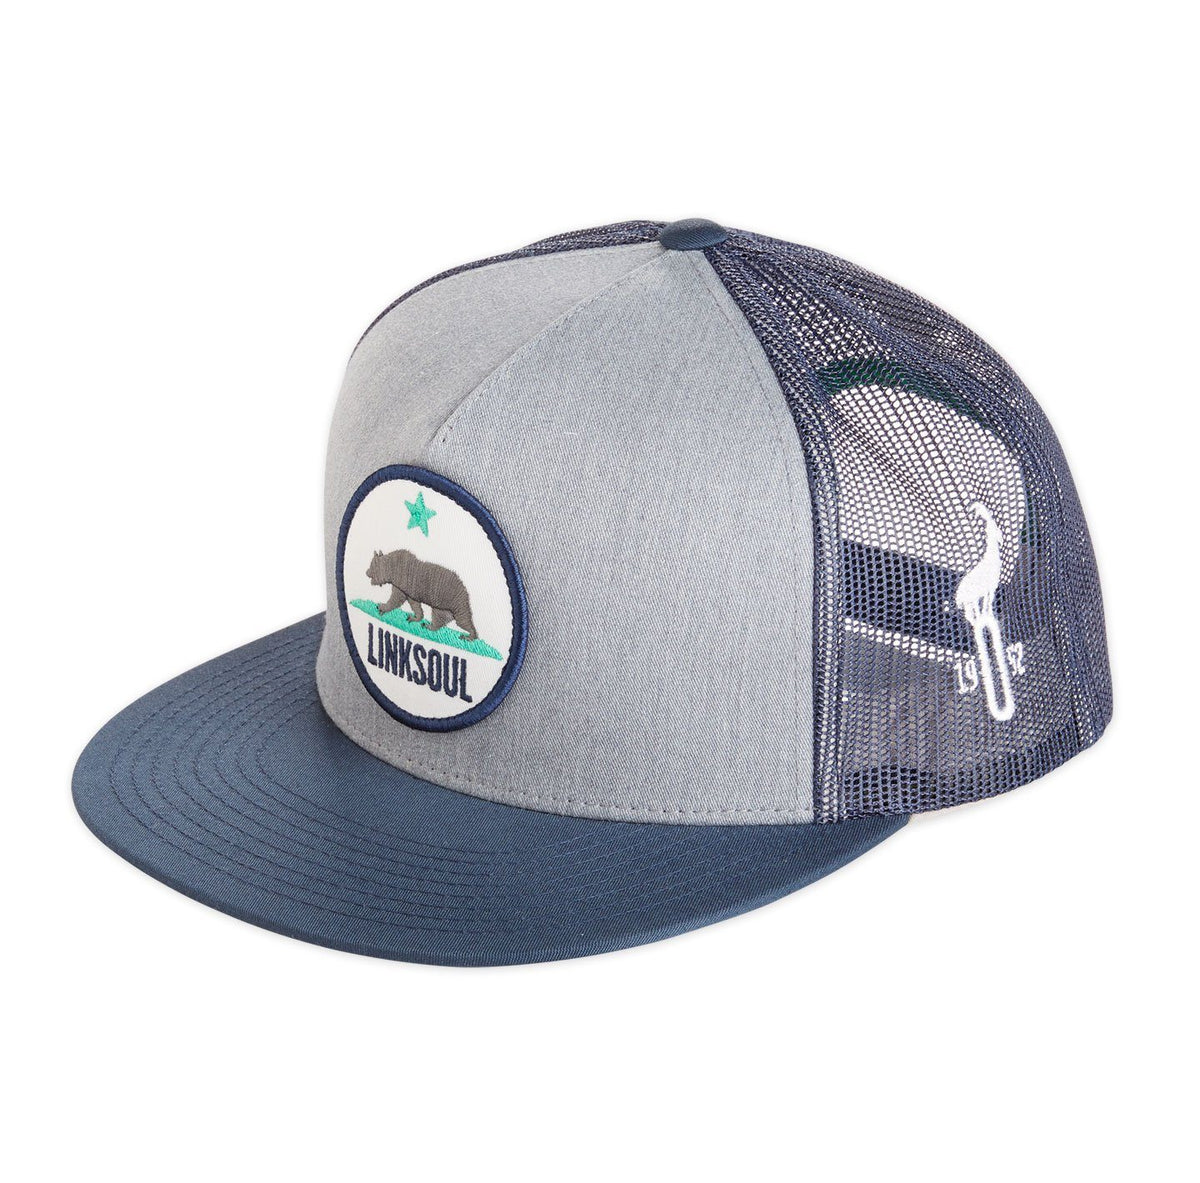 Goat Hill Park California Trucker Hat